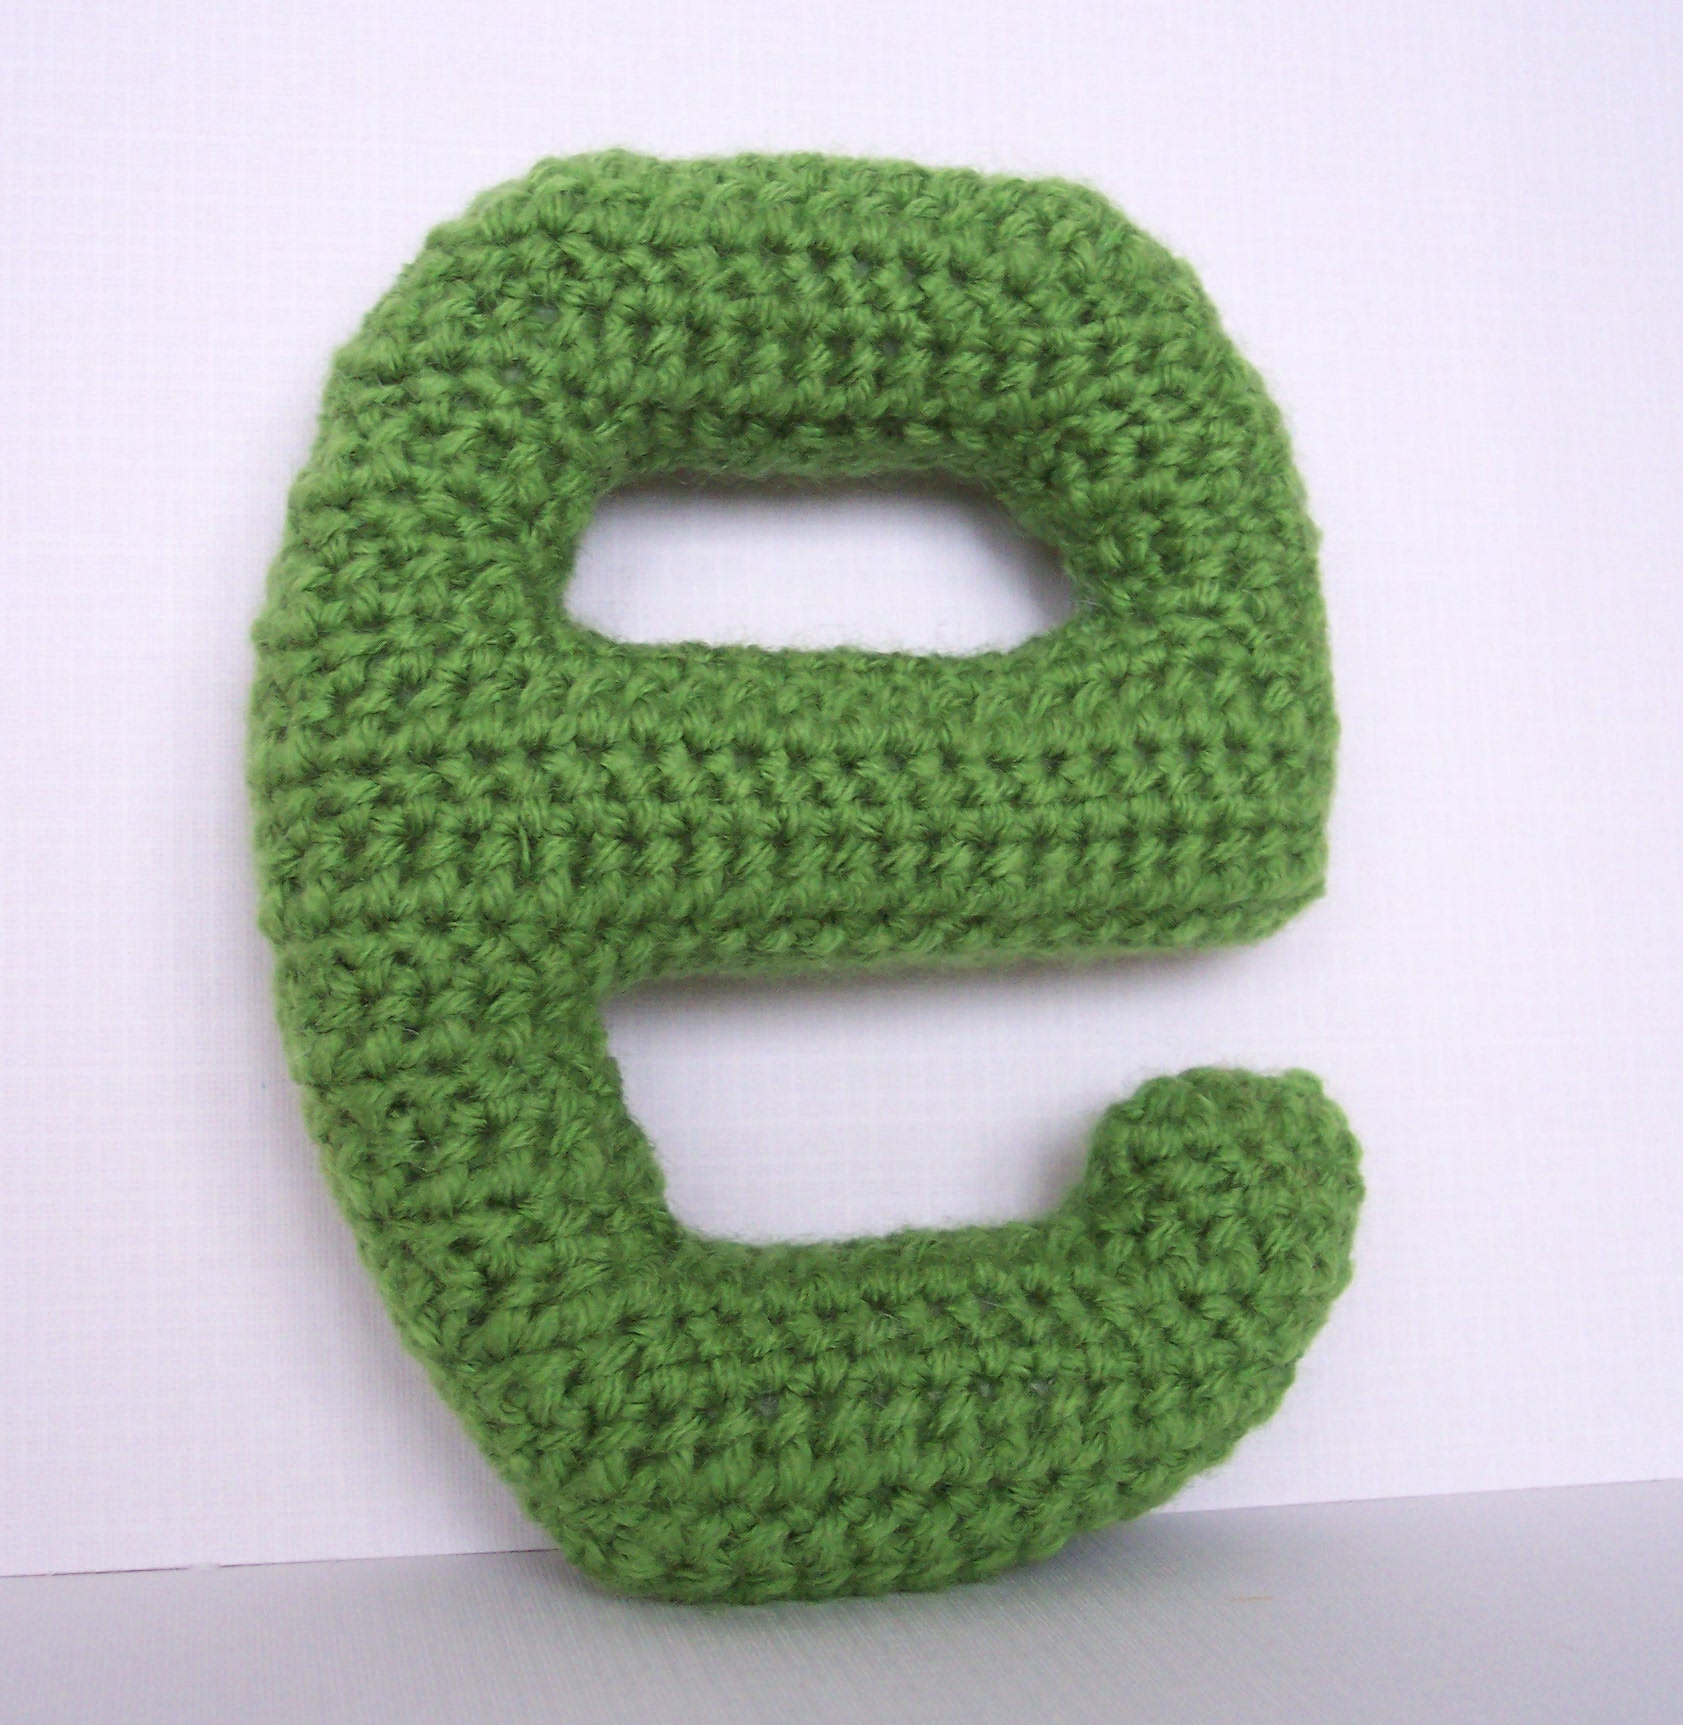 FREE CROCHET LETTER PATTERN - Crochet and Knitting Patterns